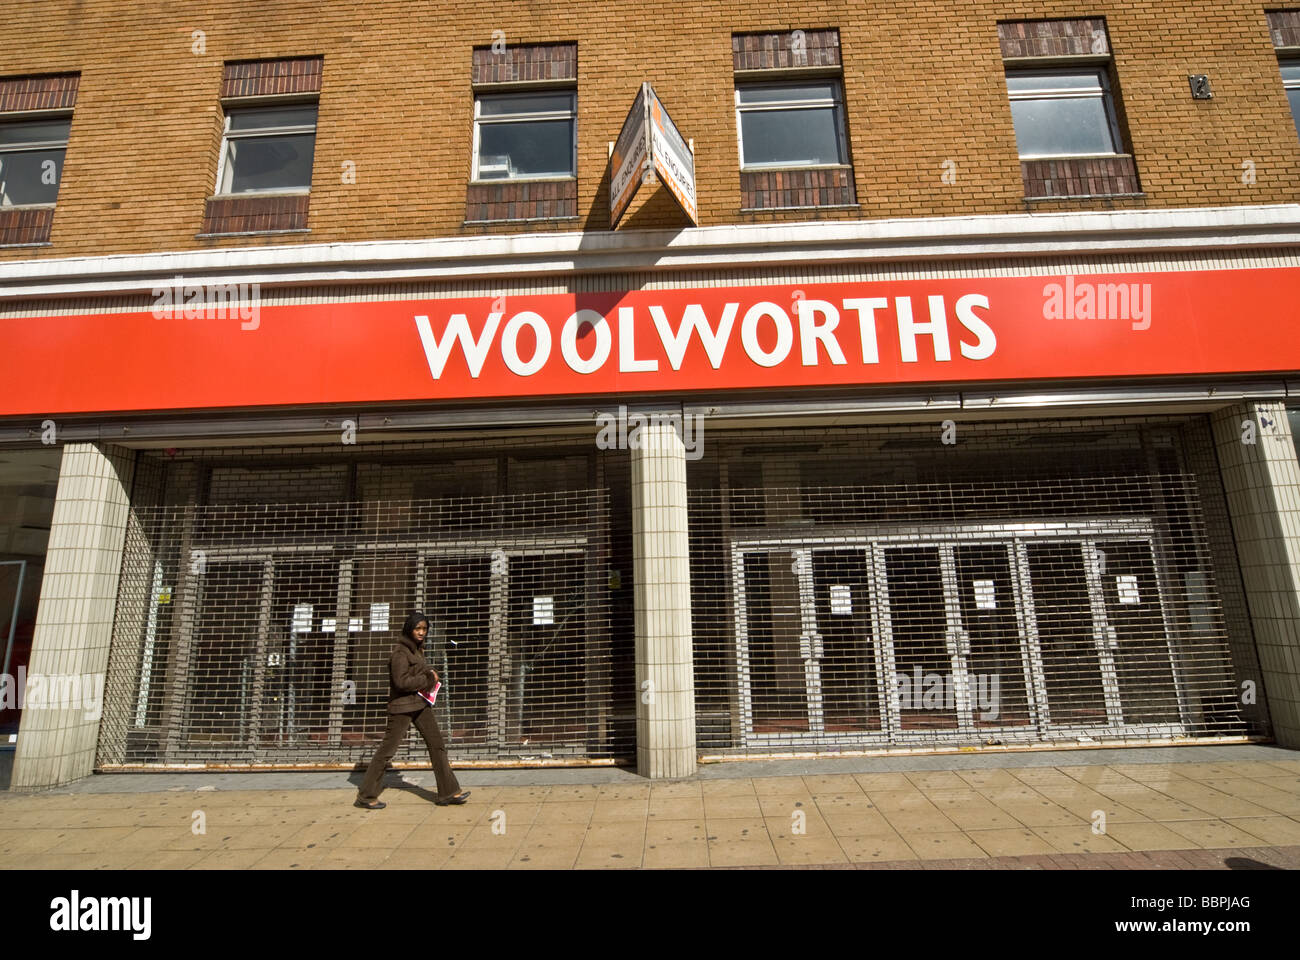 EMPTY PECKHAM WOOLWORTHS AFTER THE CLOSURE 2009 - Stock Image